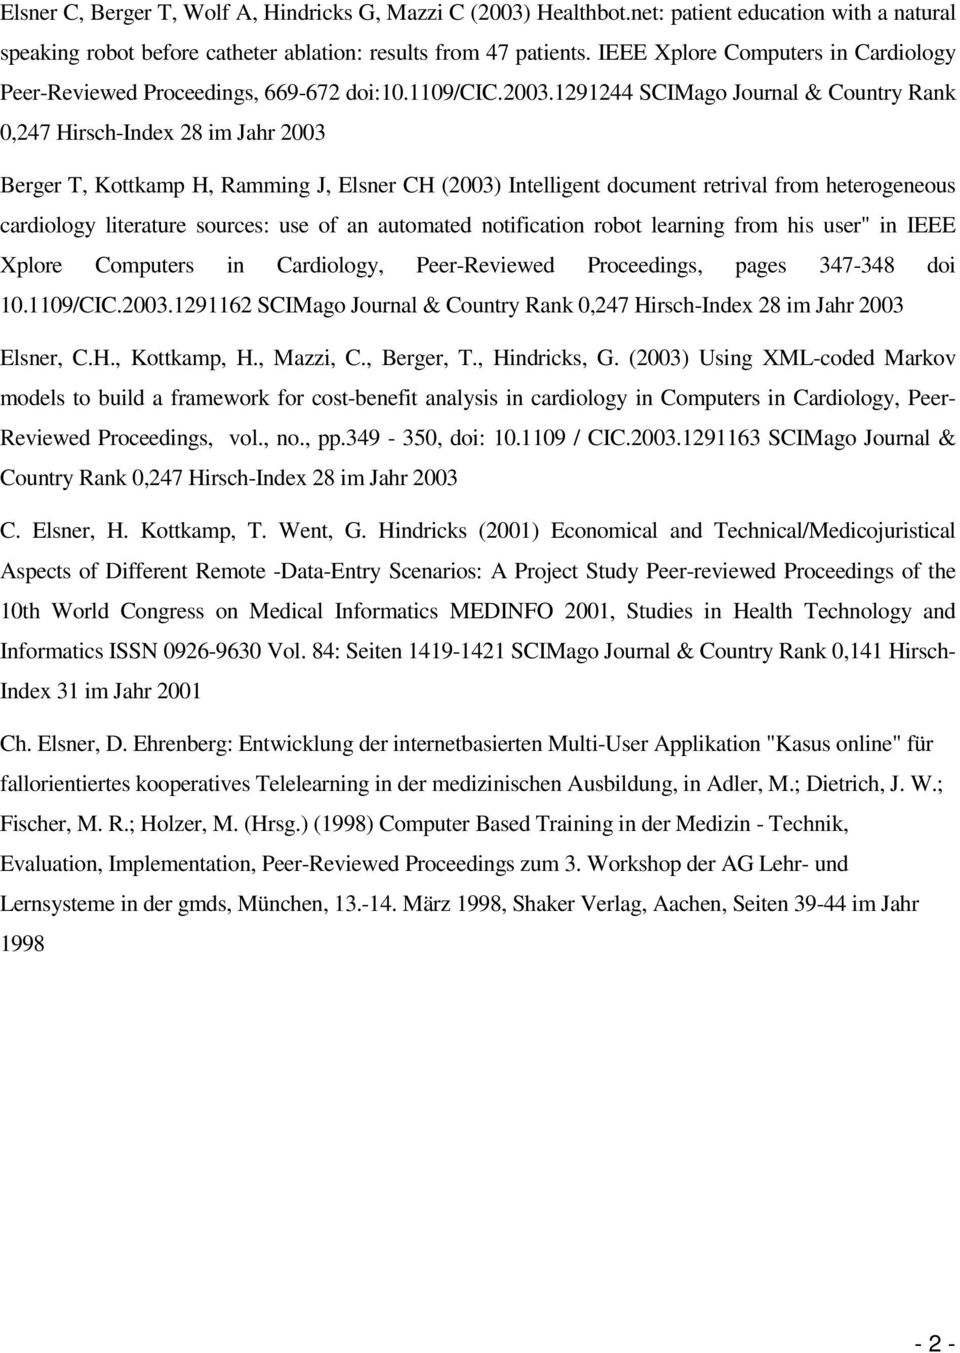 1291244 SCIMago Journal & Country Rank 0,247 Hirsch-Index 28 im Jahr 2003 Berger T, Kottkamp H, Ramming J, Elsner CH (2003) Intelligent document retrival from heterogeneous cardiology literature